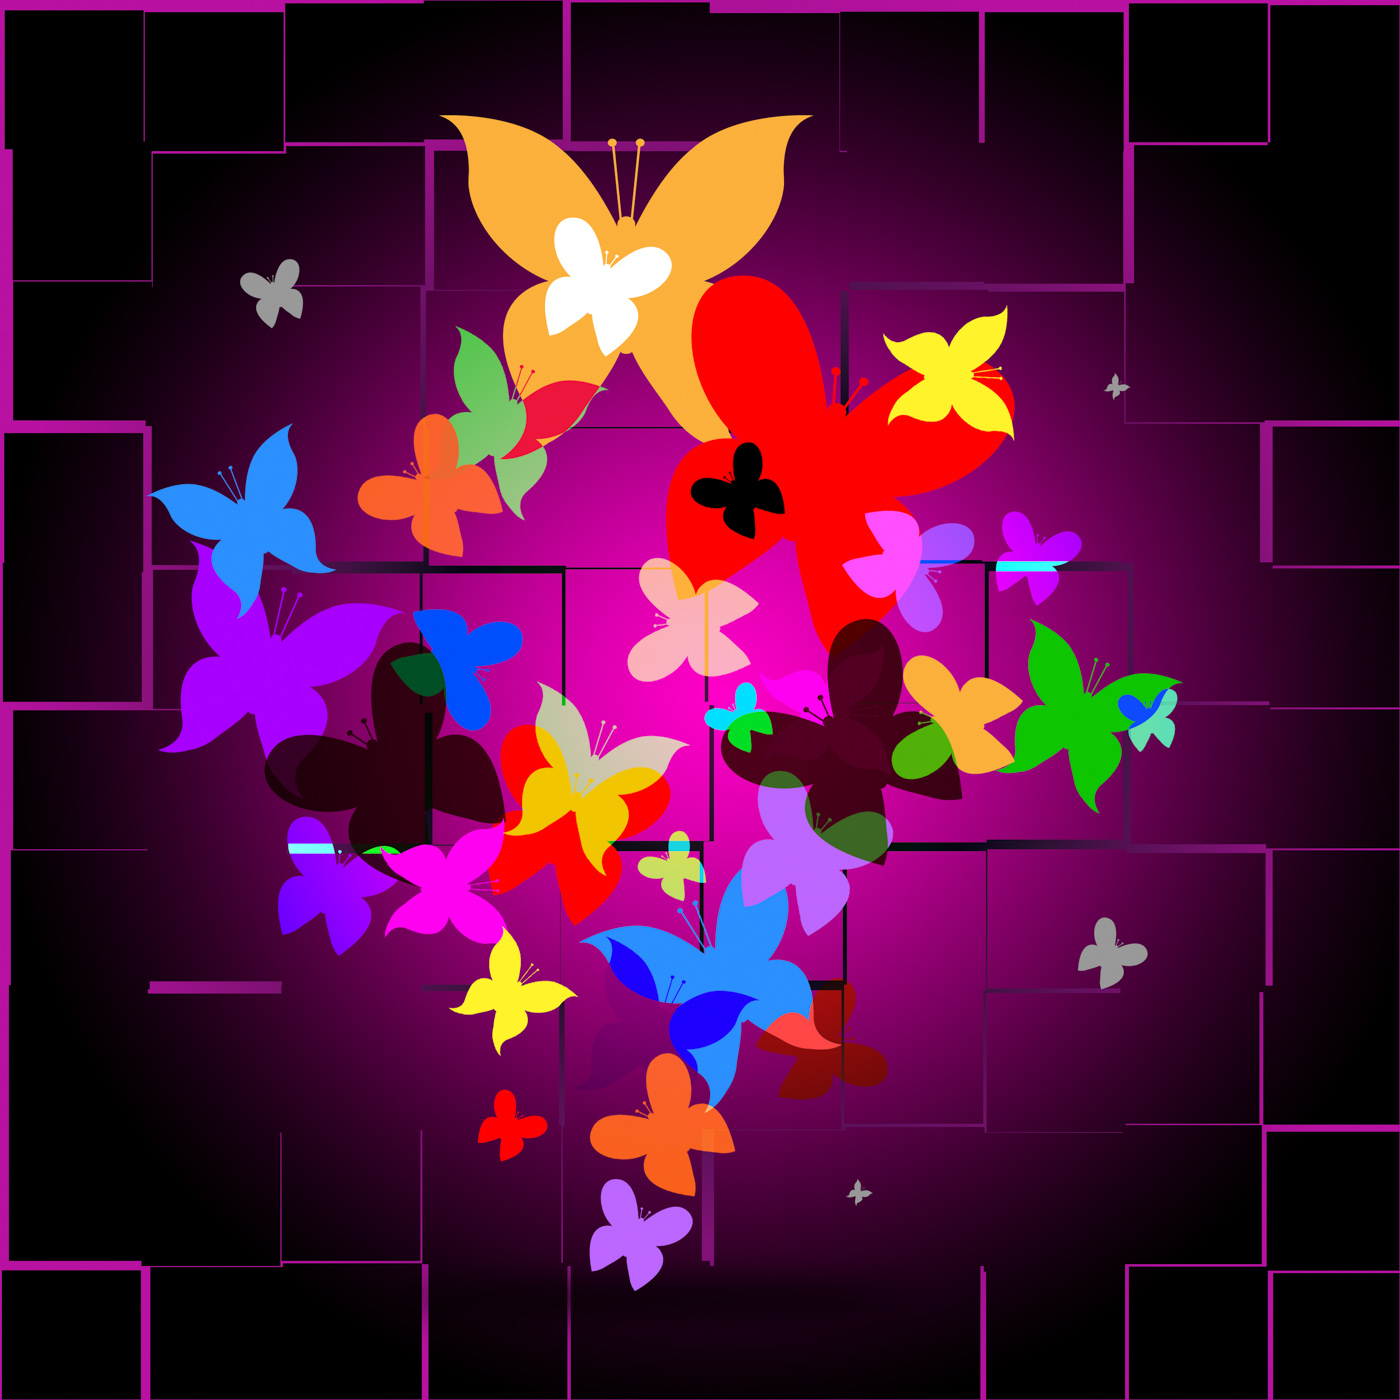 Summer butterflies indicates animals butterfly and creature photo